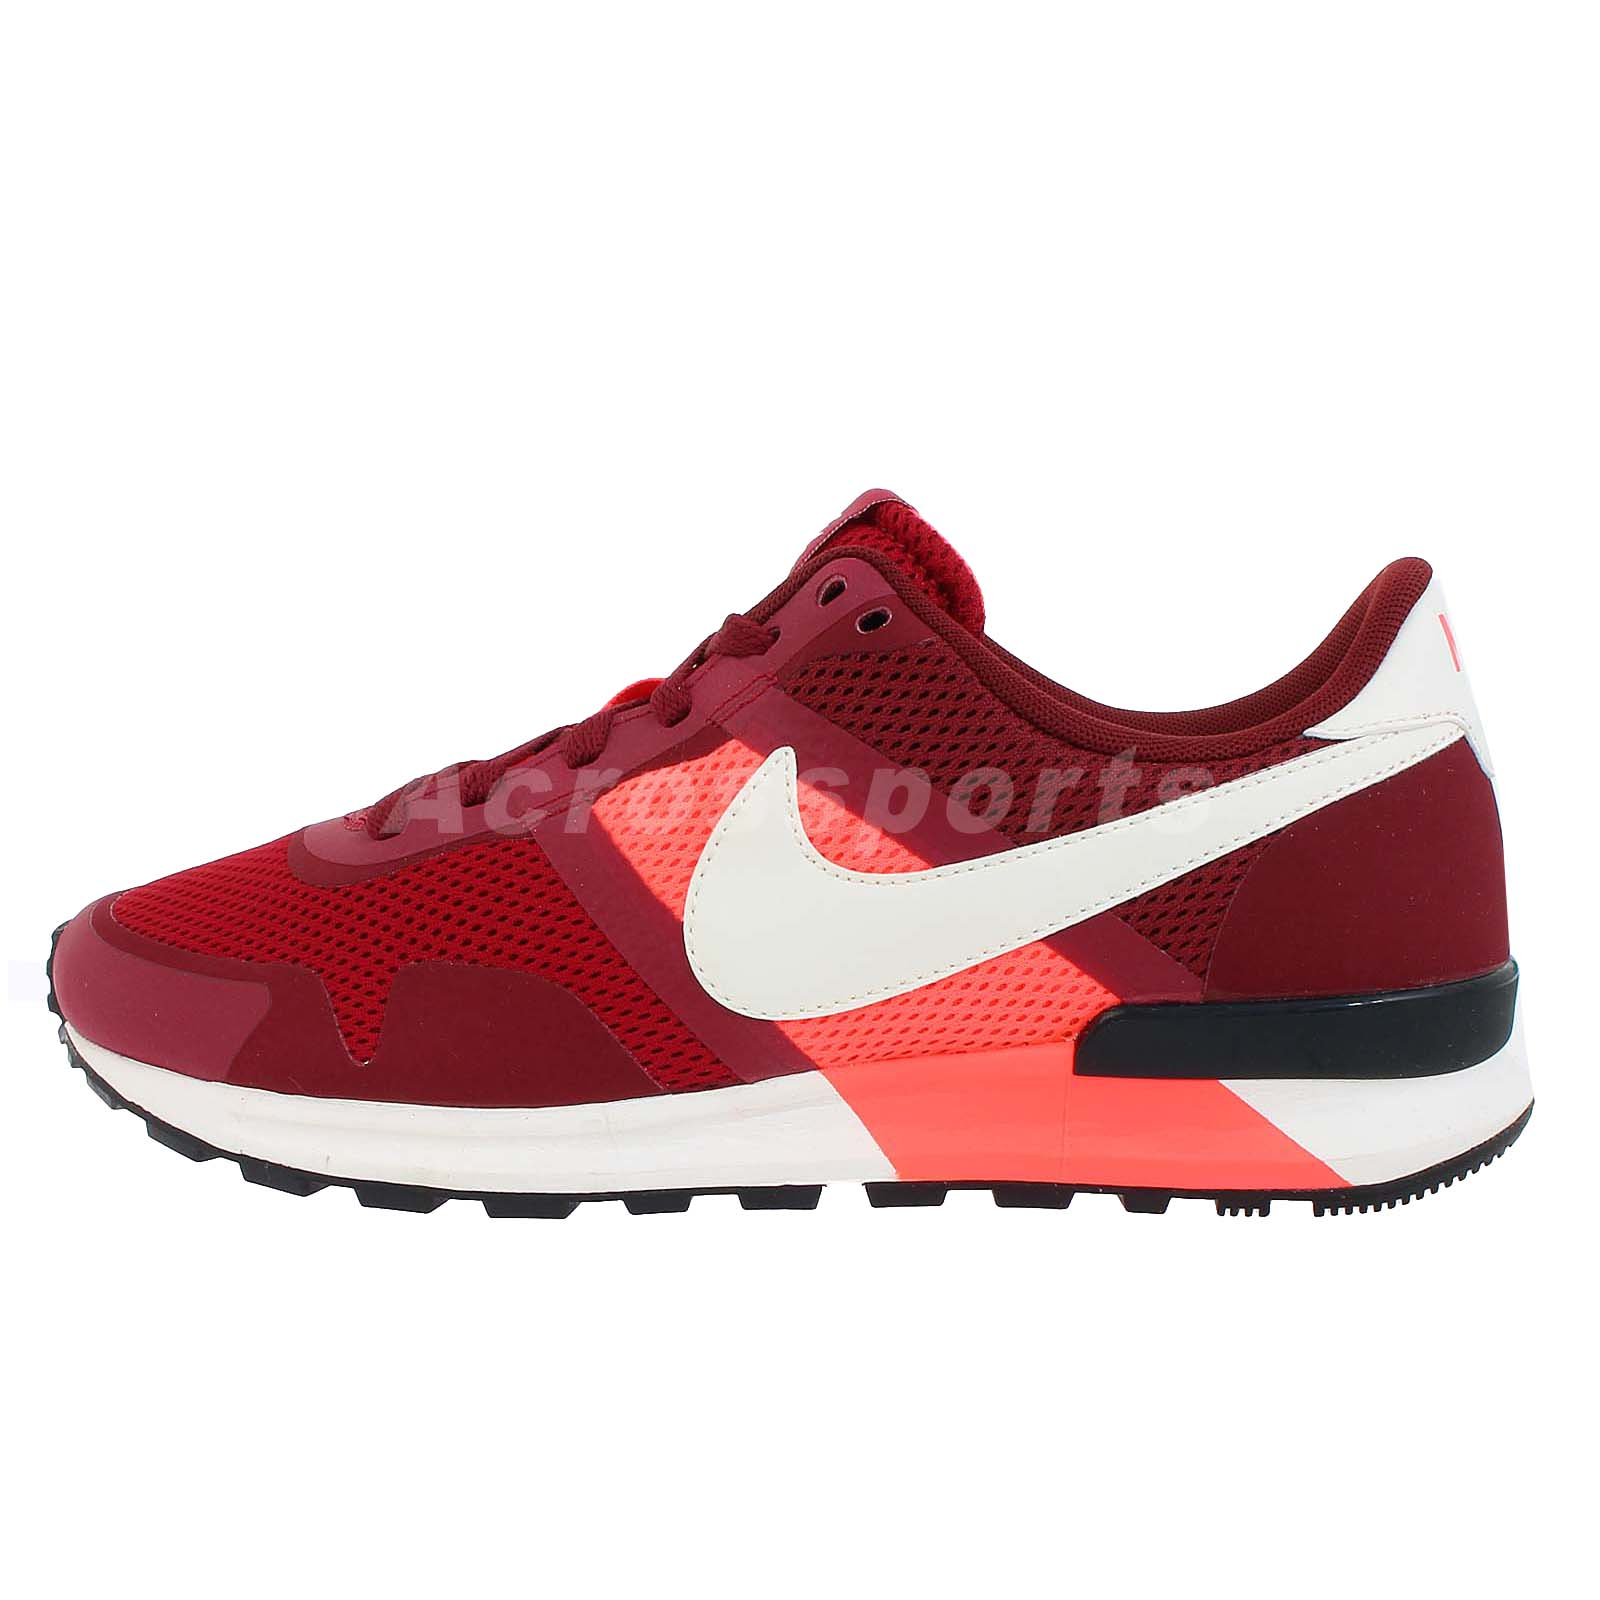 16ce1450f0c Dettagli su Nike Air Pegasus 83 30 Red New Running Shoes NSW